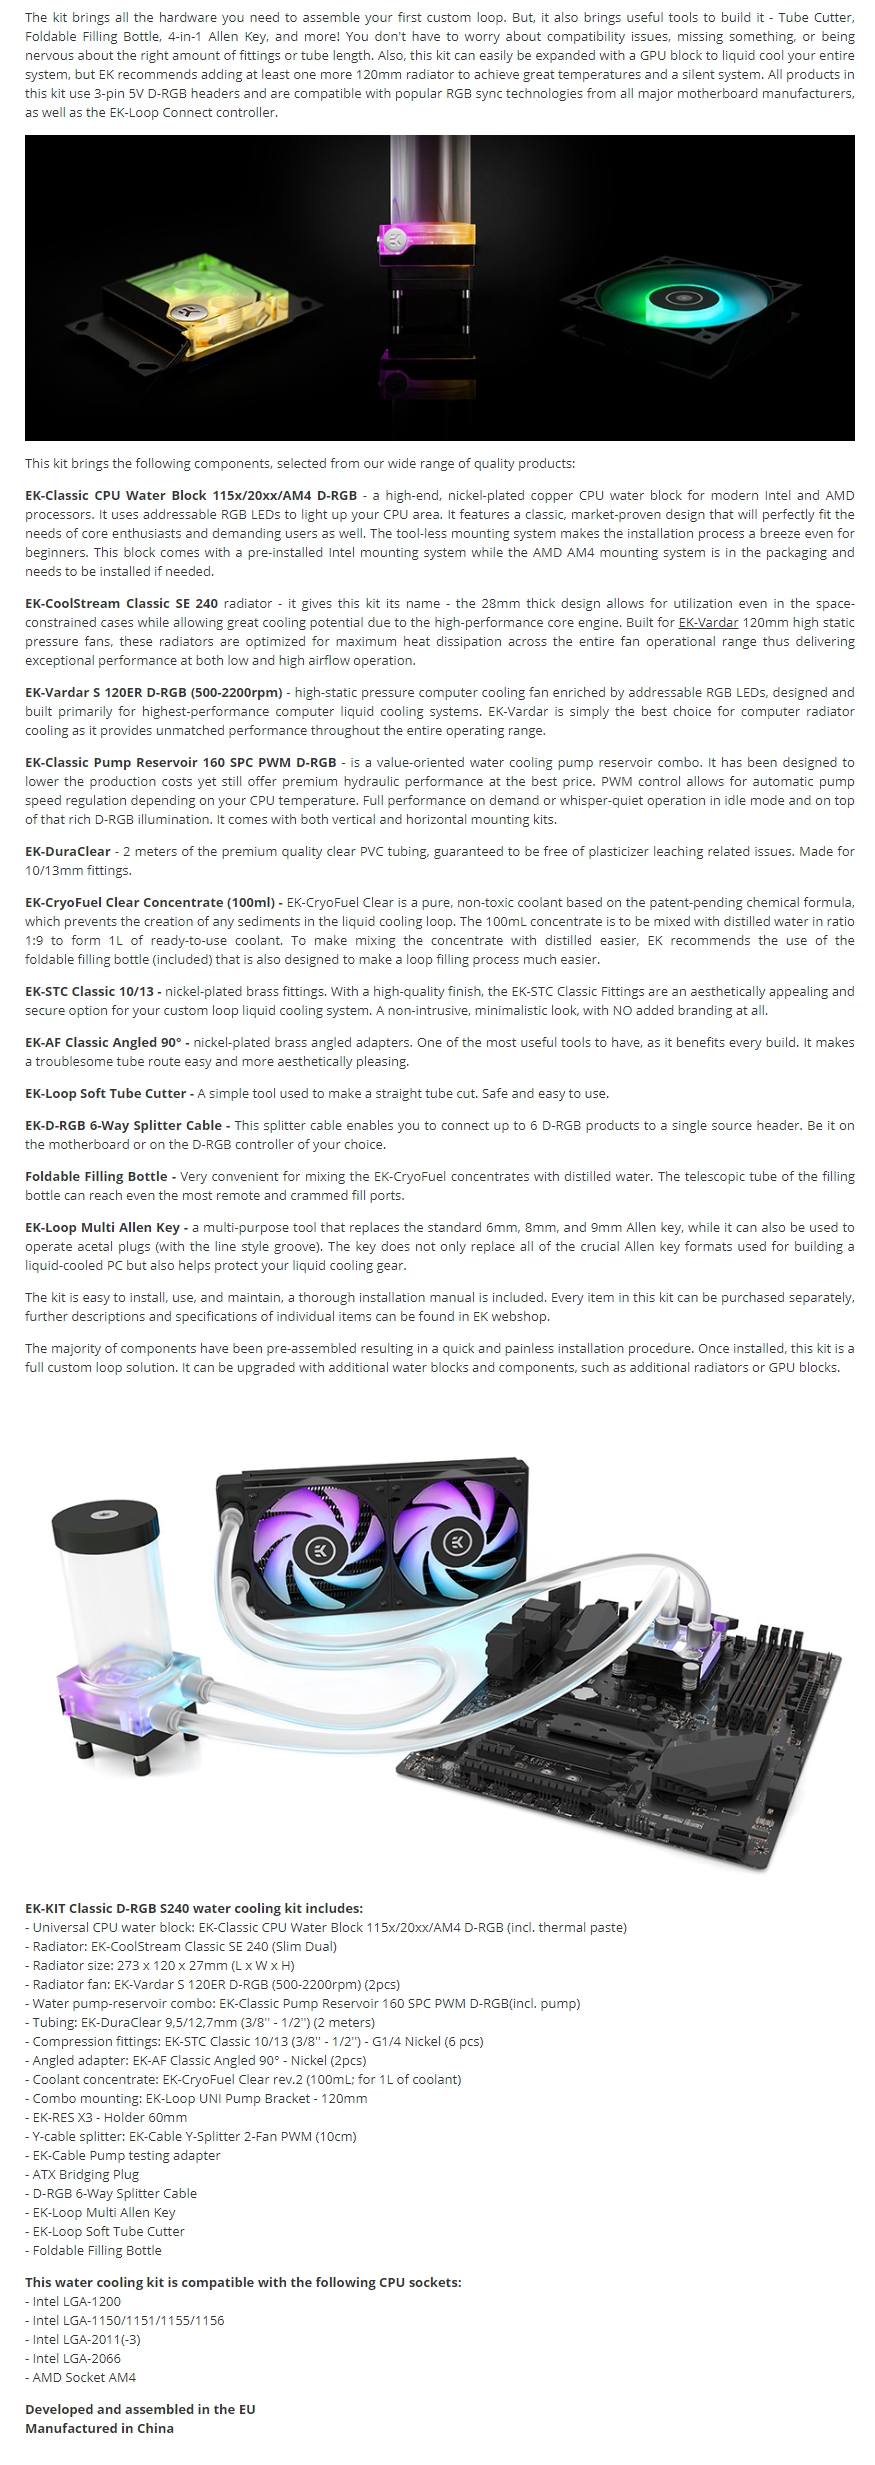 A large marketing image providing additional information about the product EK Classic Kit D-RGB S240 AIO Liquid Cooling Kit - Additional alt info not provided